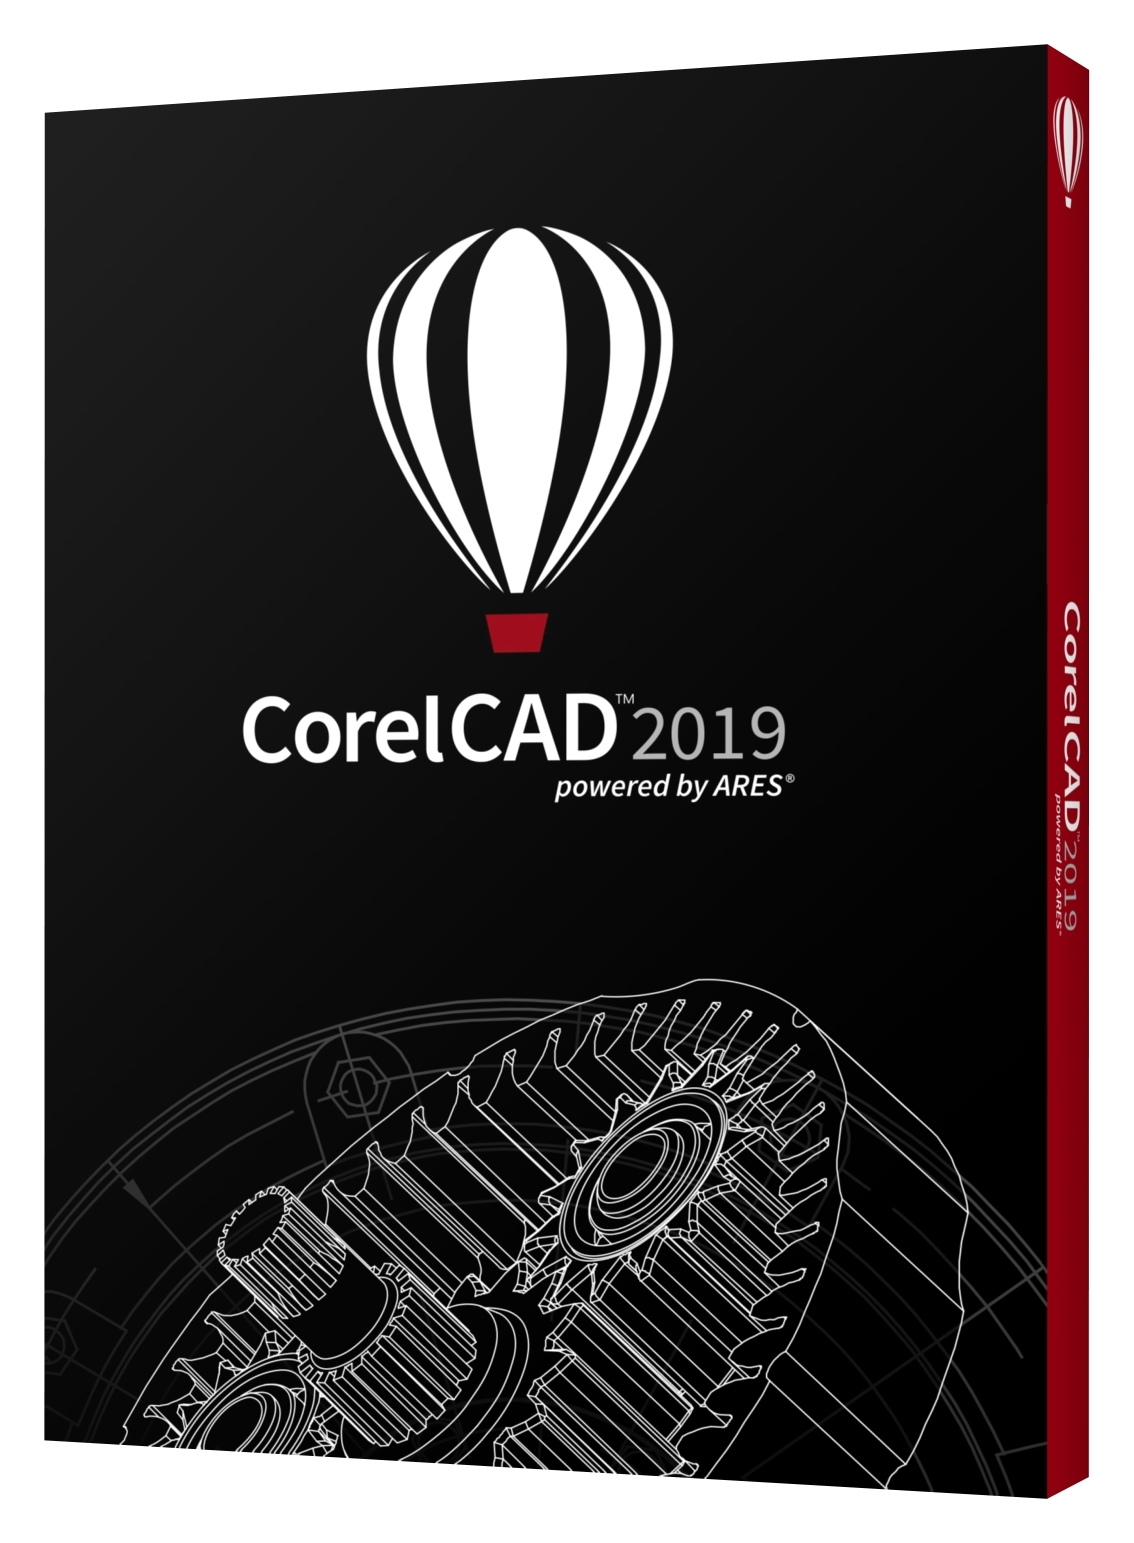 CorelCAD 2019 (DVD Case)